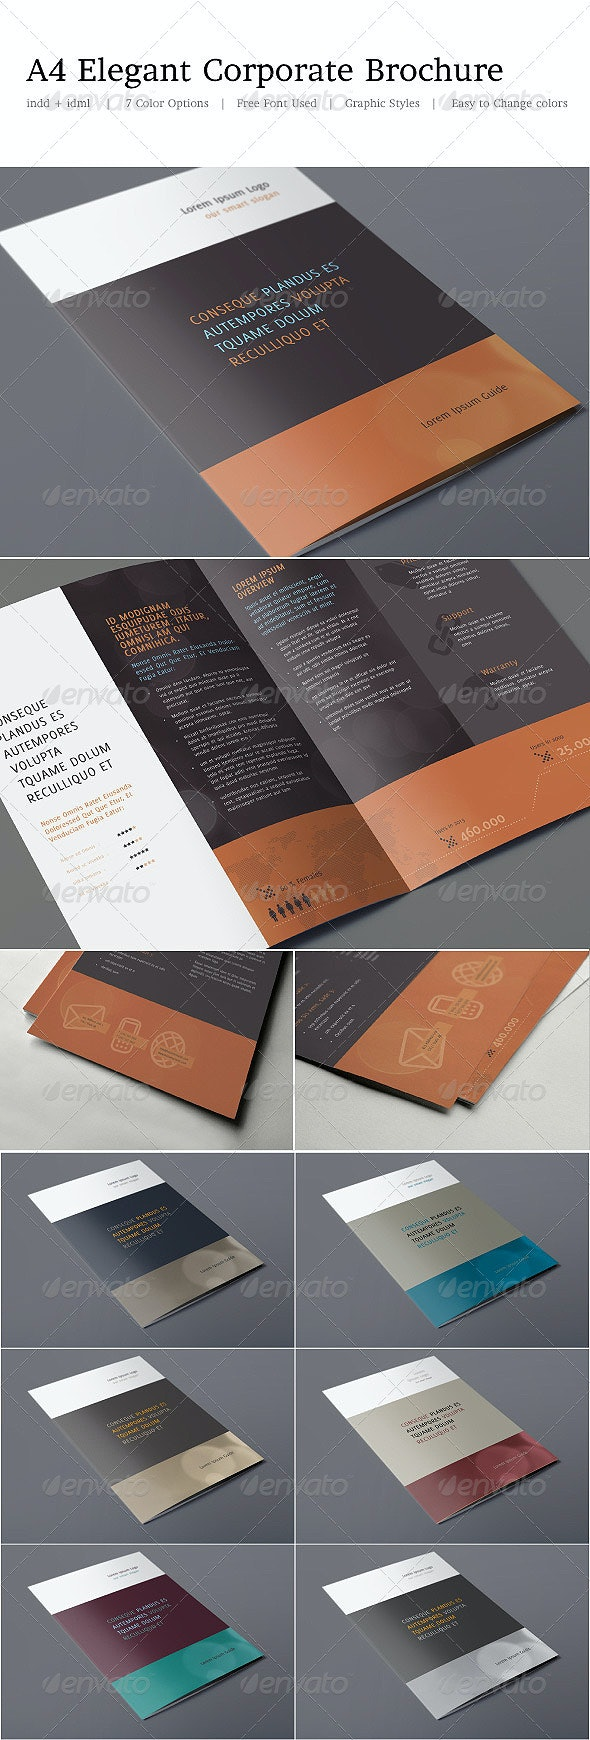 A4 Elegant Corporate Brochure - Brochures Print Templates